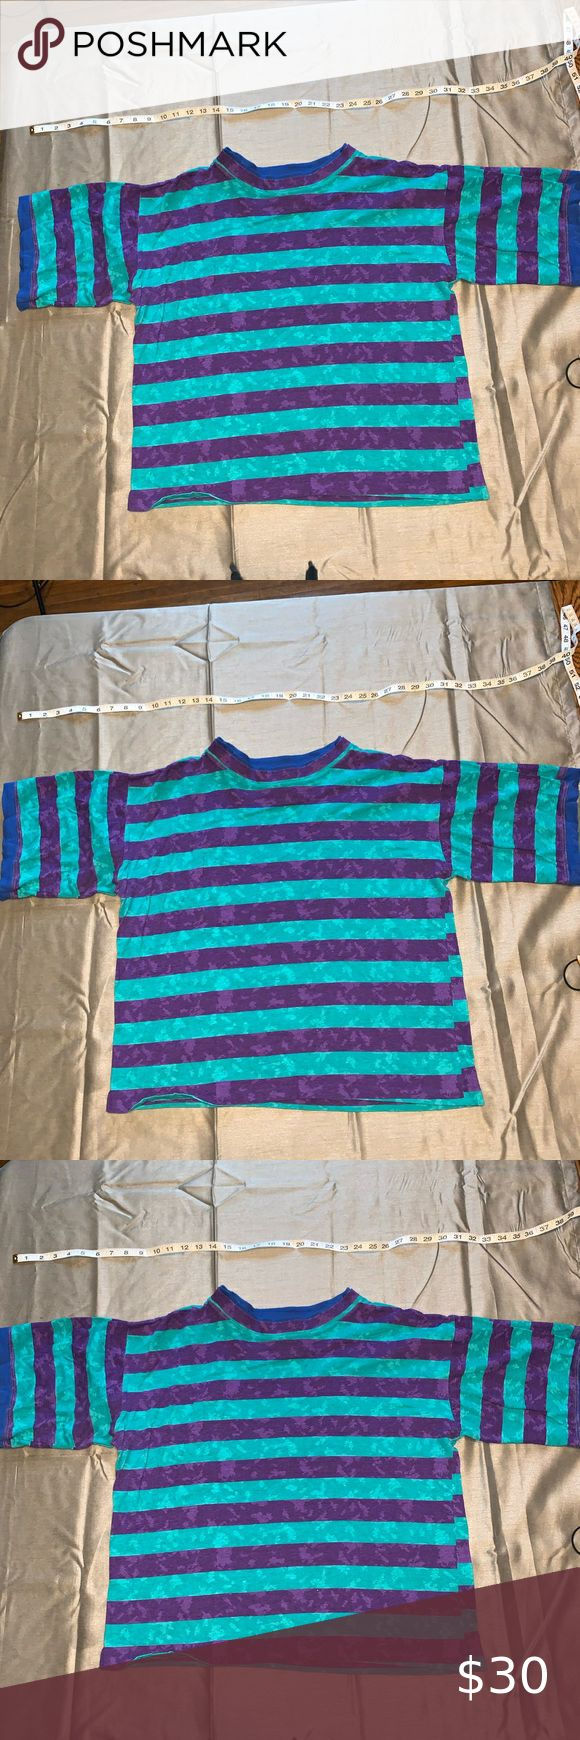 Vintage Striped Tshirt Vintage Striped T Shirt Single Stitch Made In The Usa Size Xl Shirts Tees Short Sleeve In 2020 Stripe Tshirt Vintage Tee Shirts